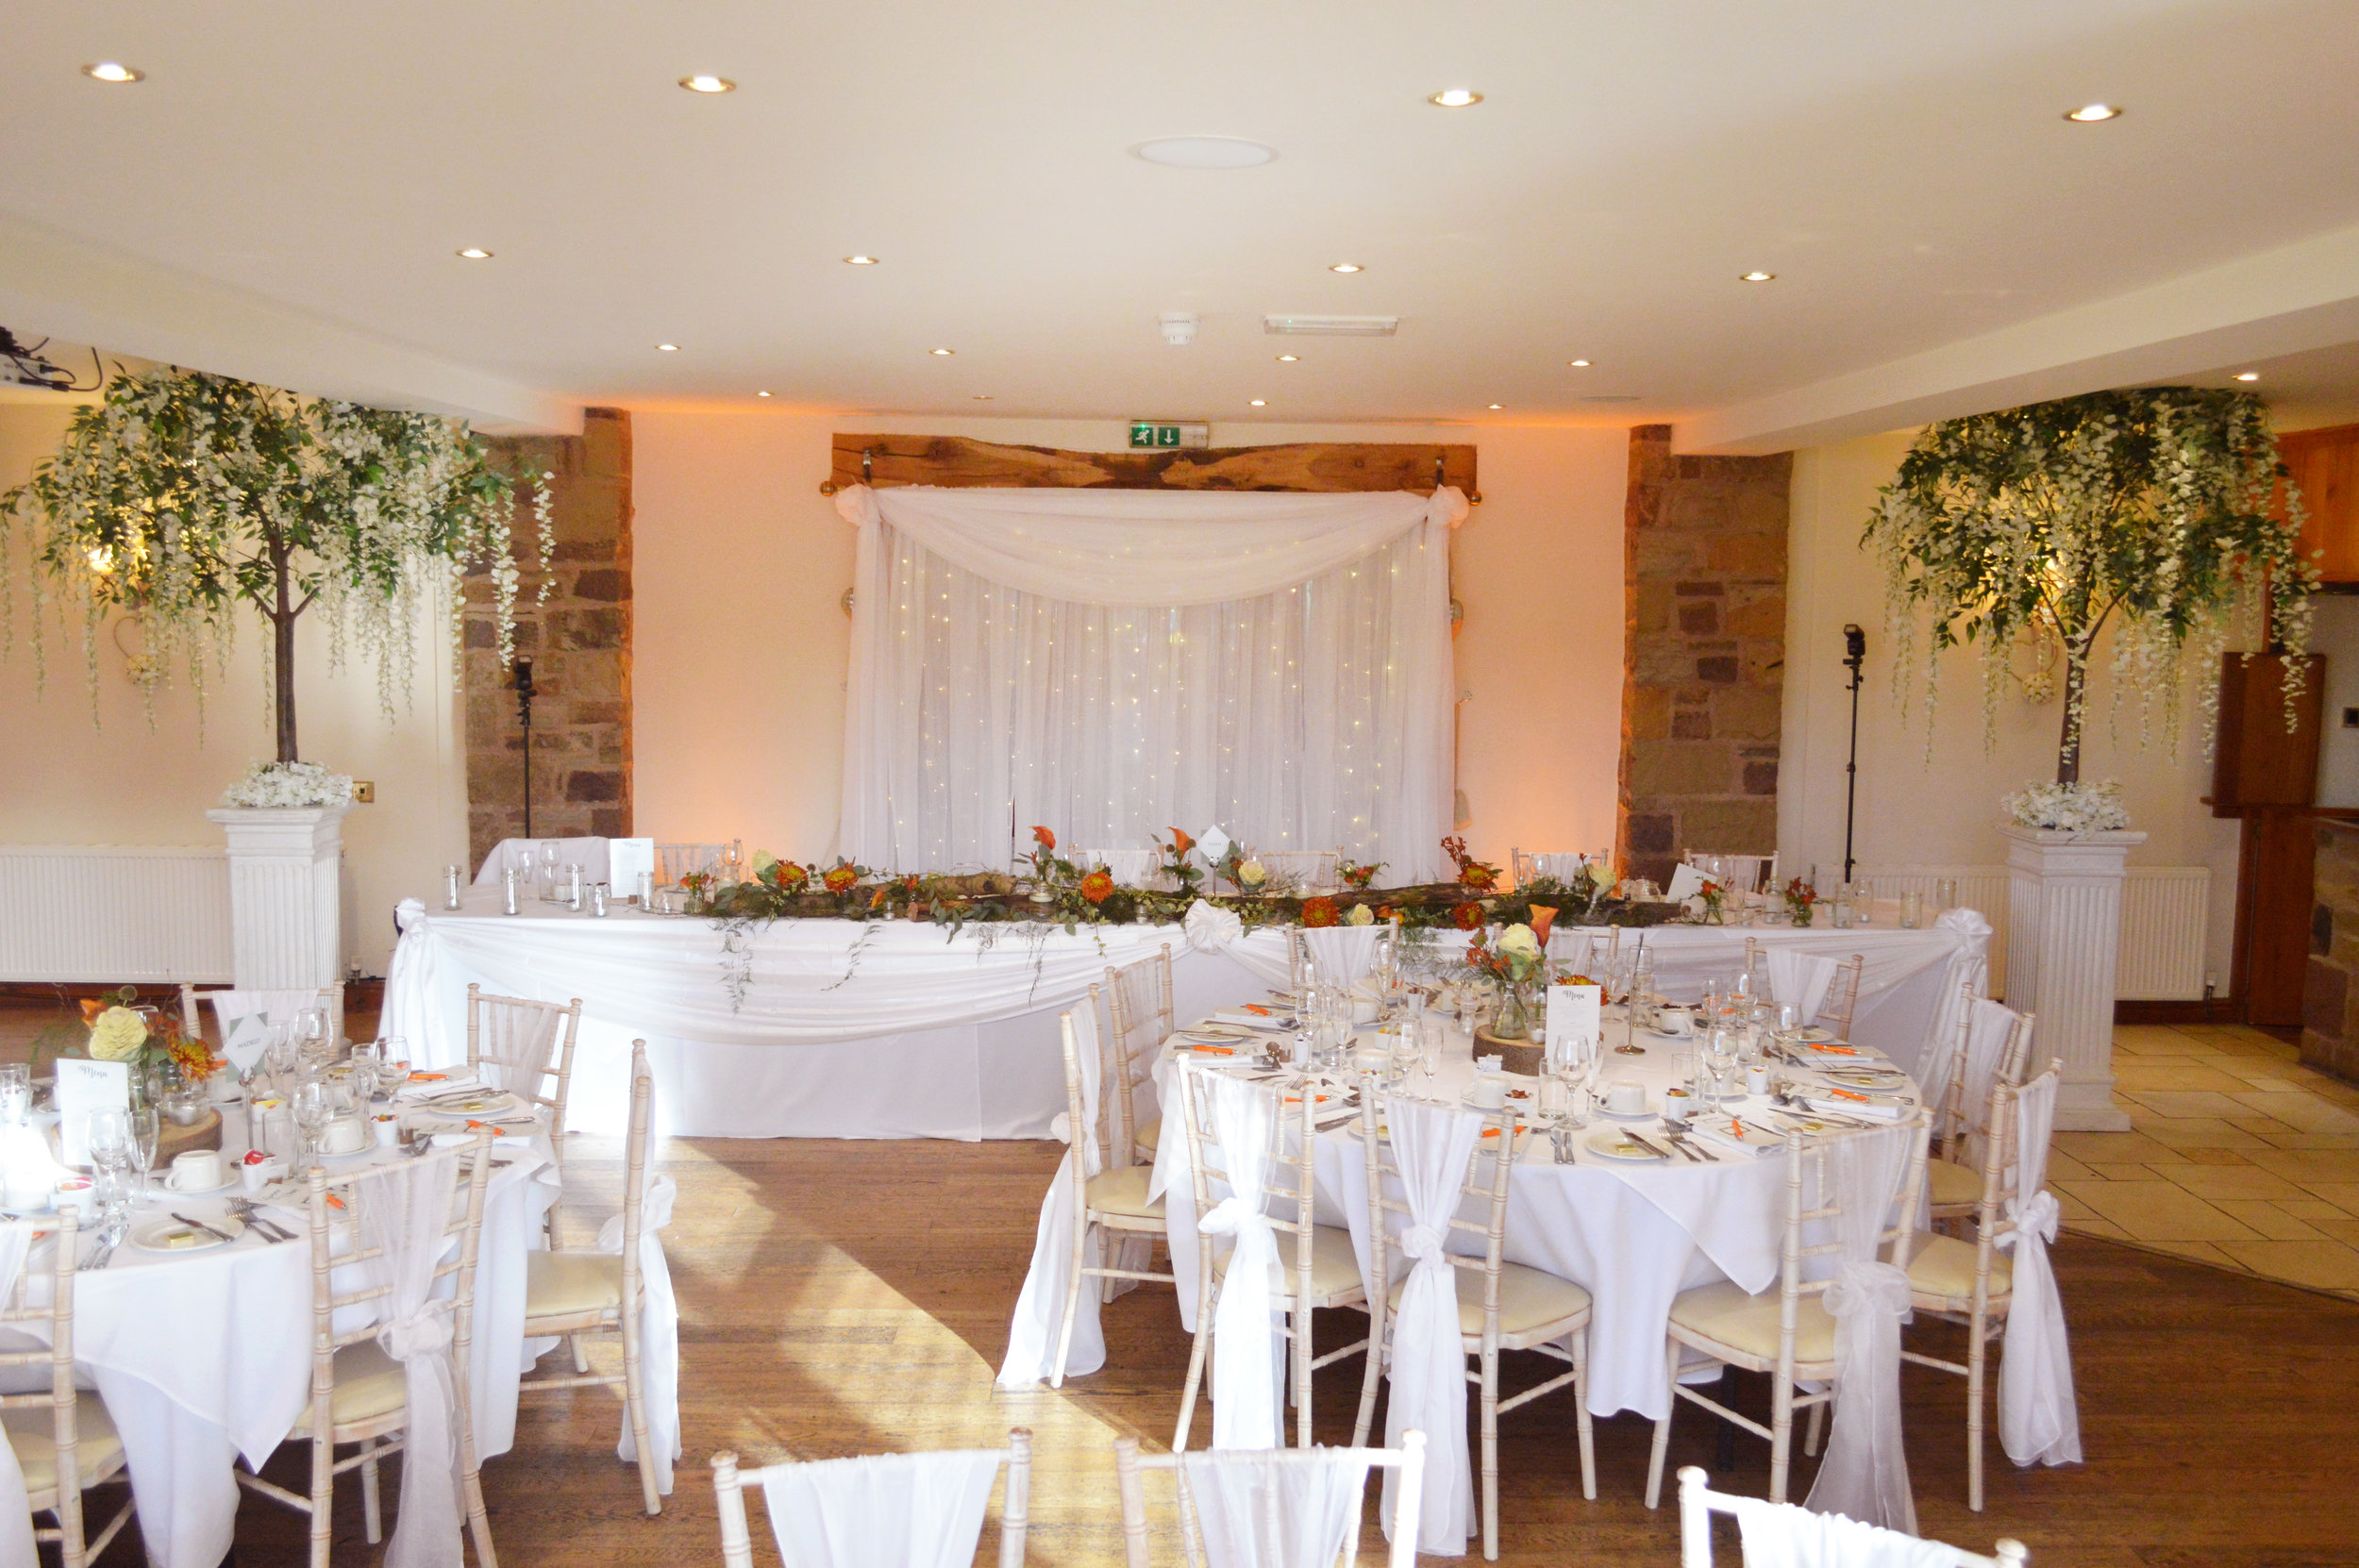 Wisteria trees next to the top table and top table drape